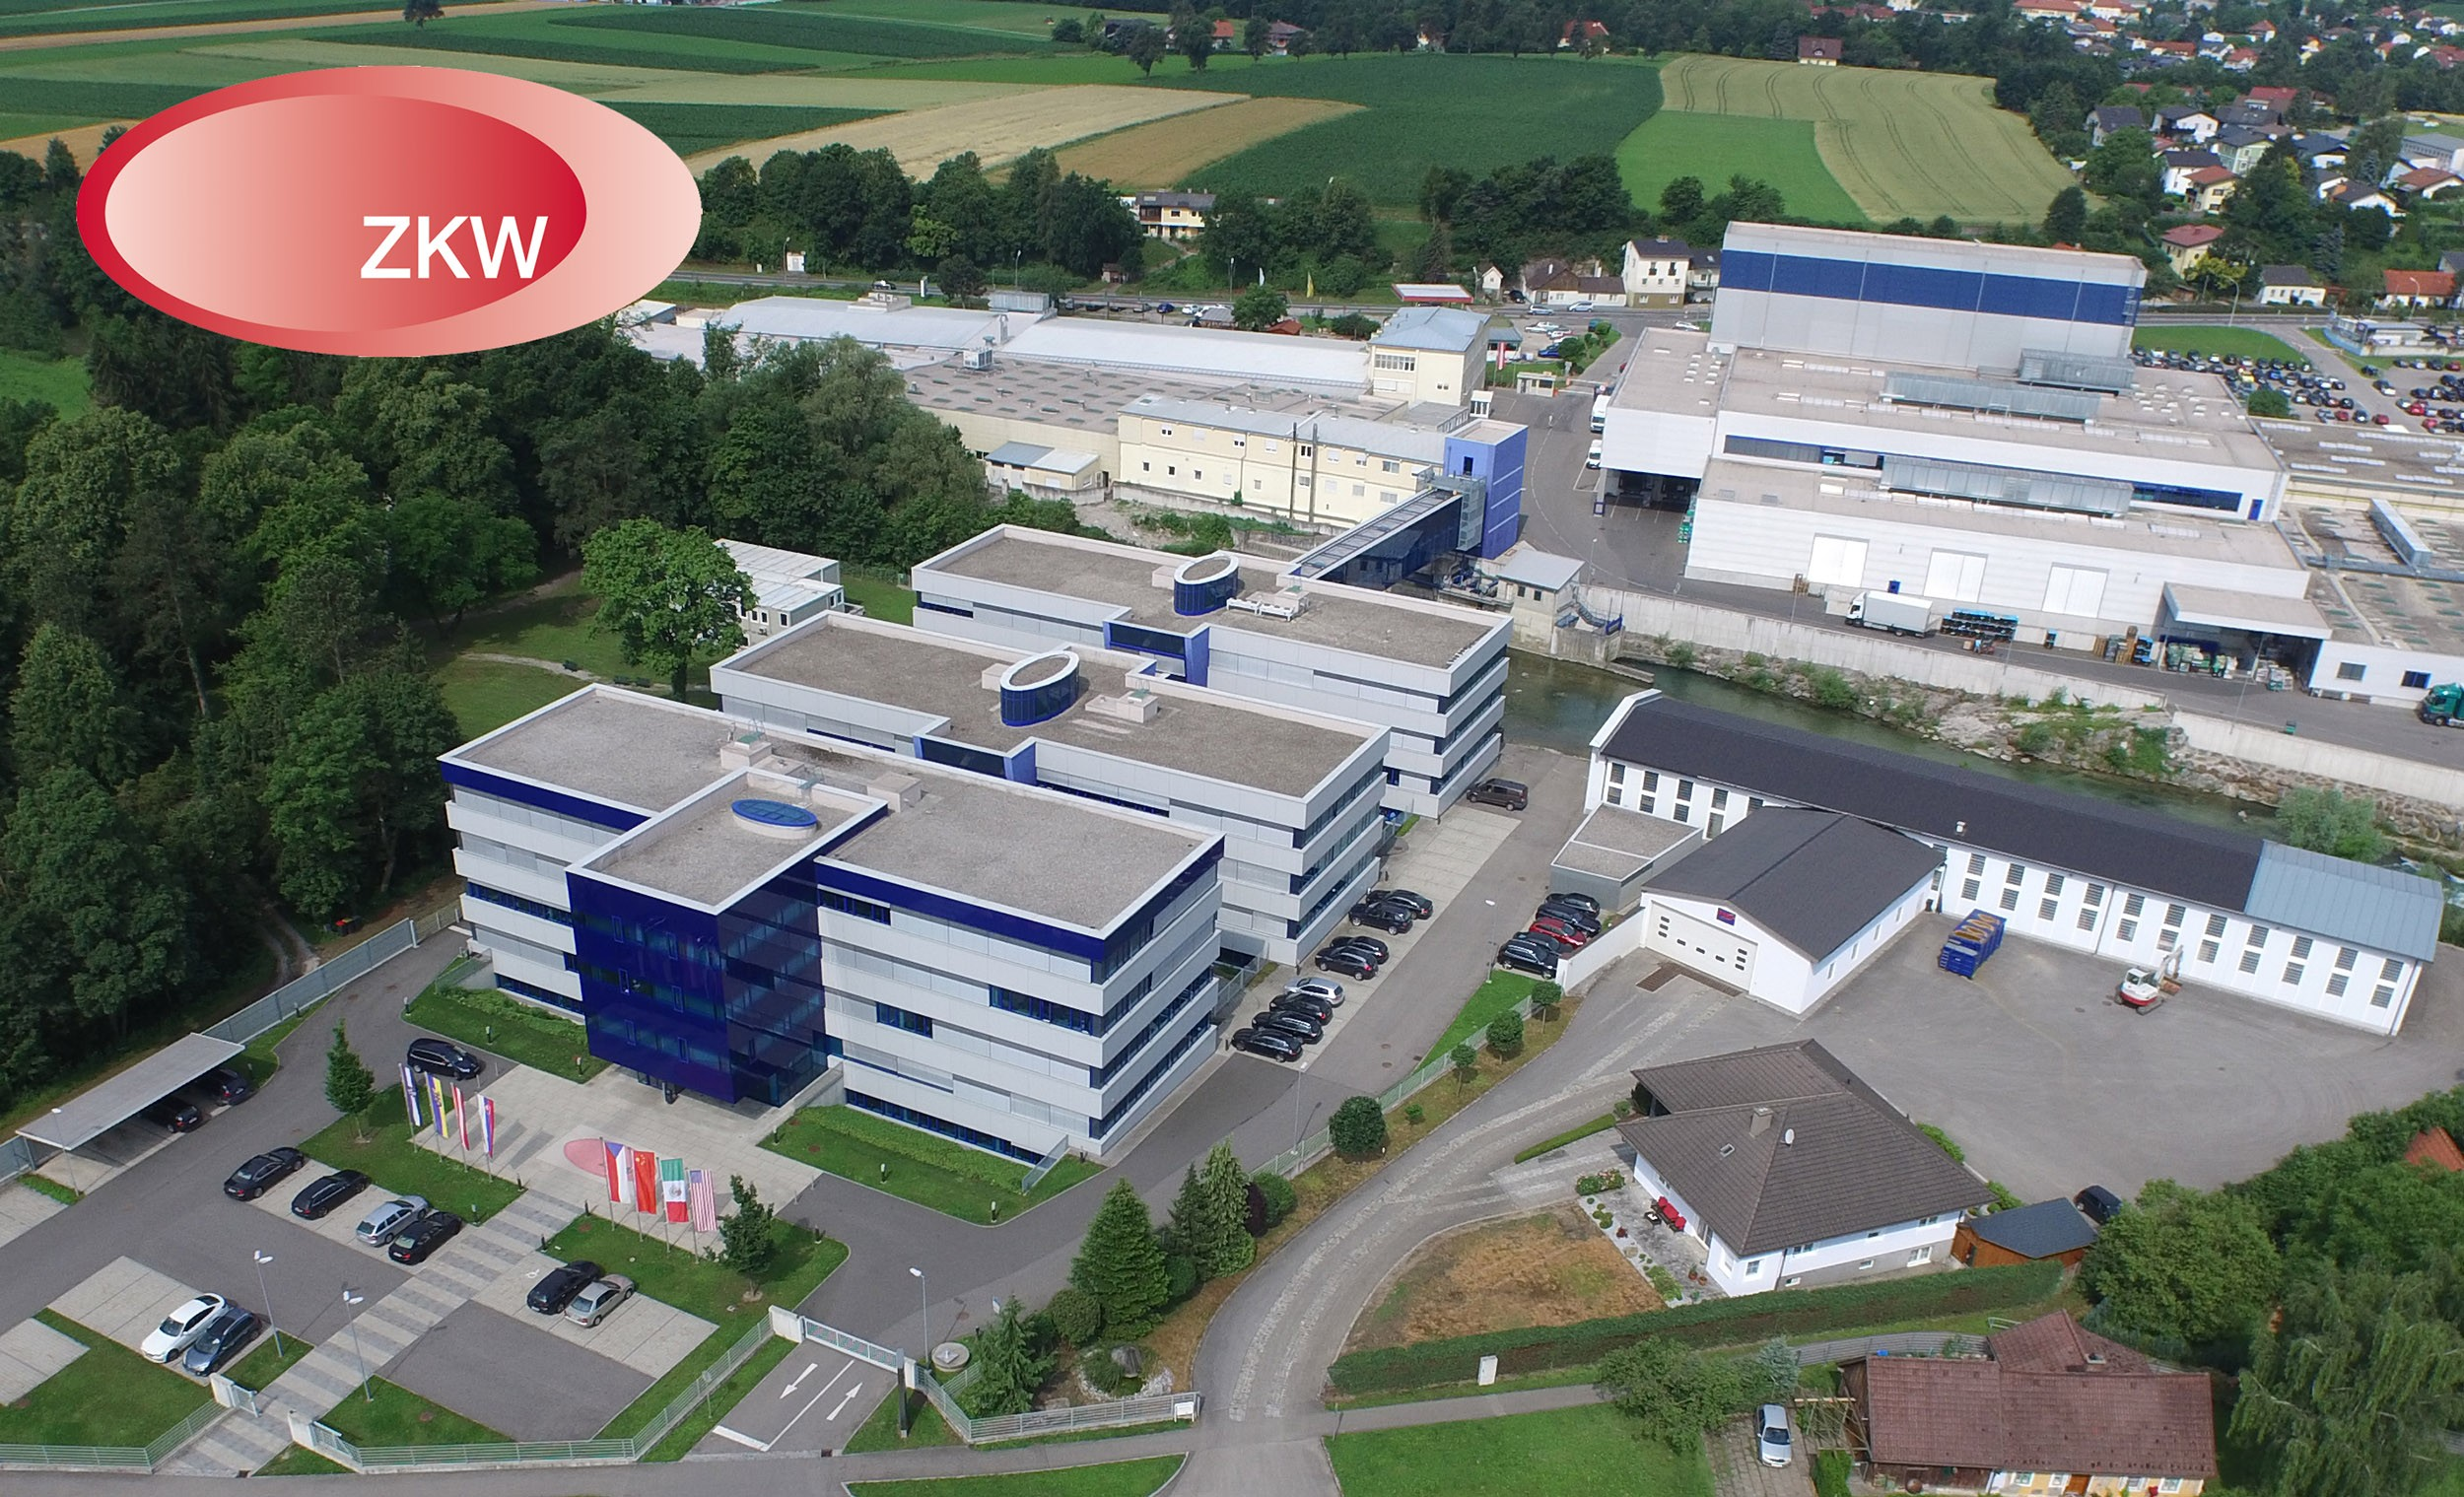 An aerial view of the premium automotive lighting company ZKW Group's Headquarters.